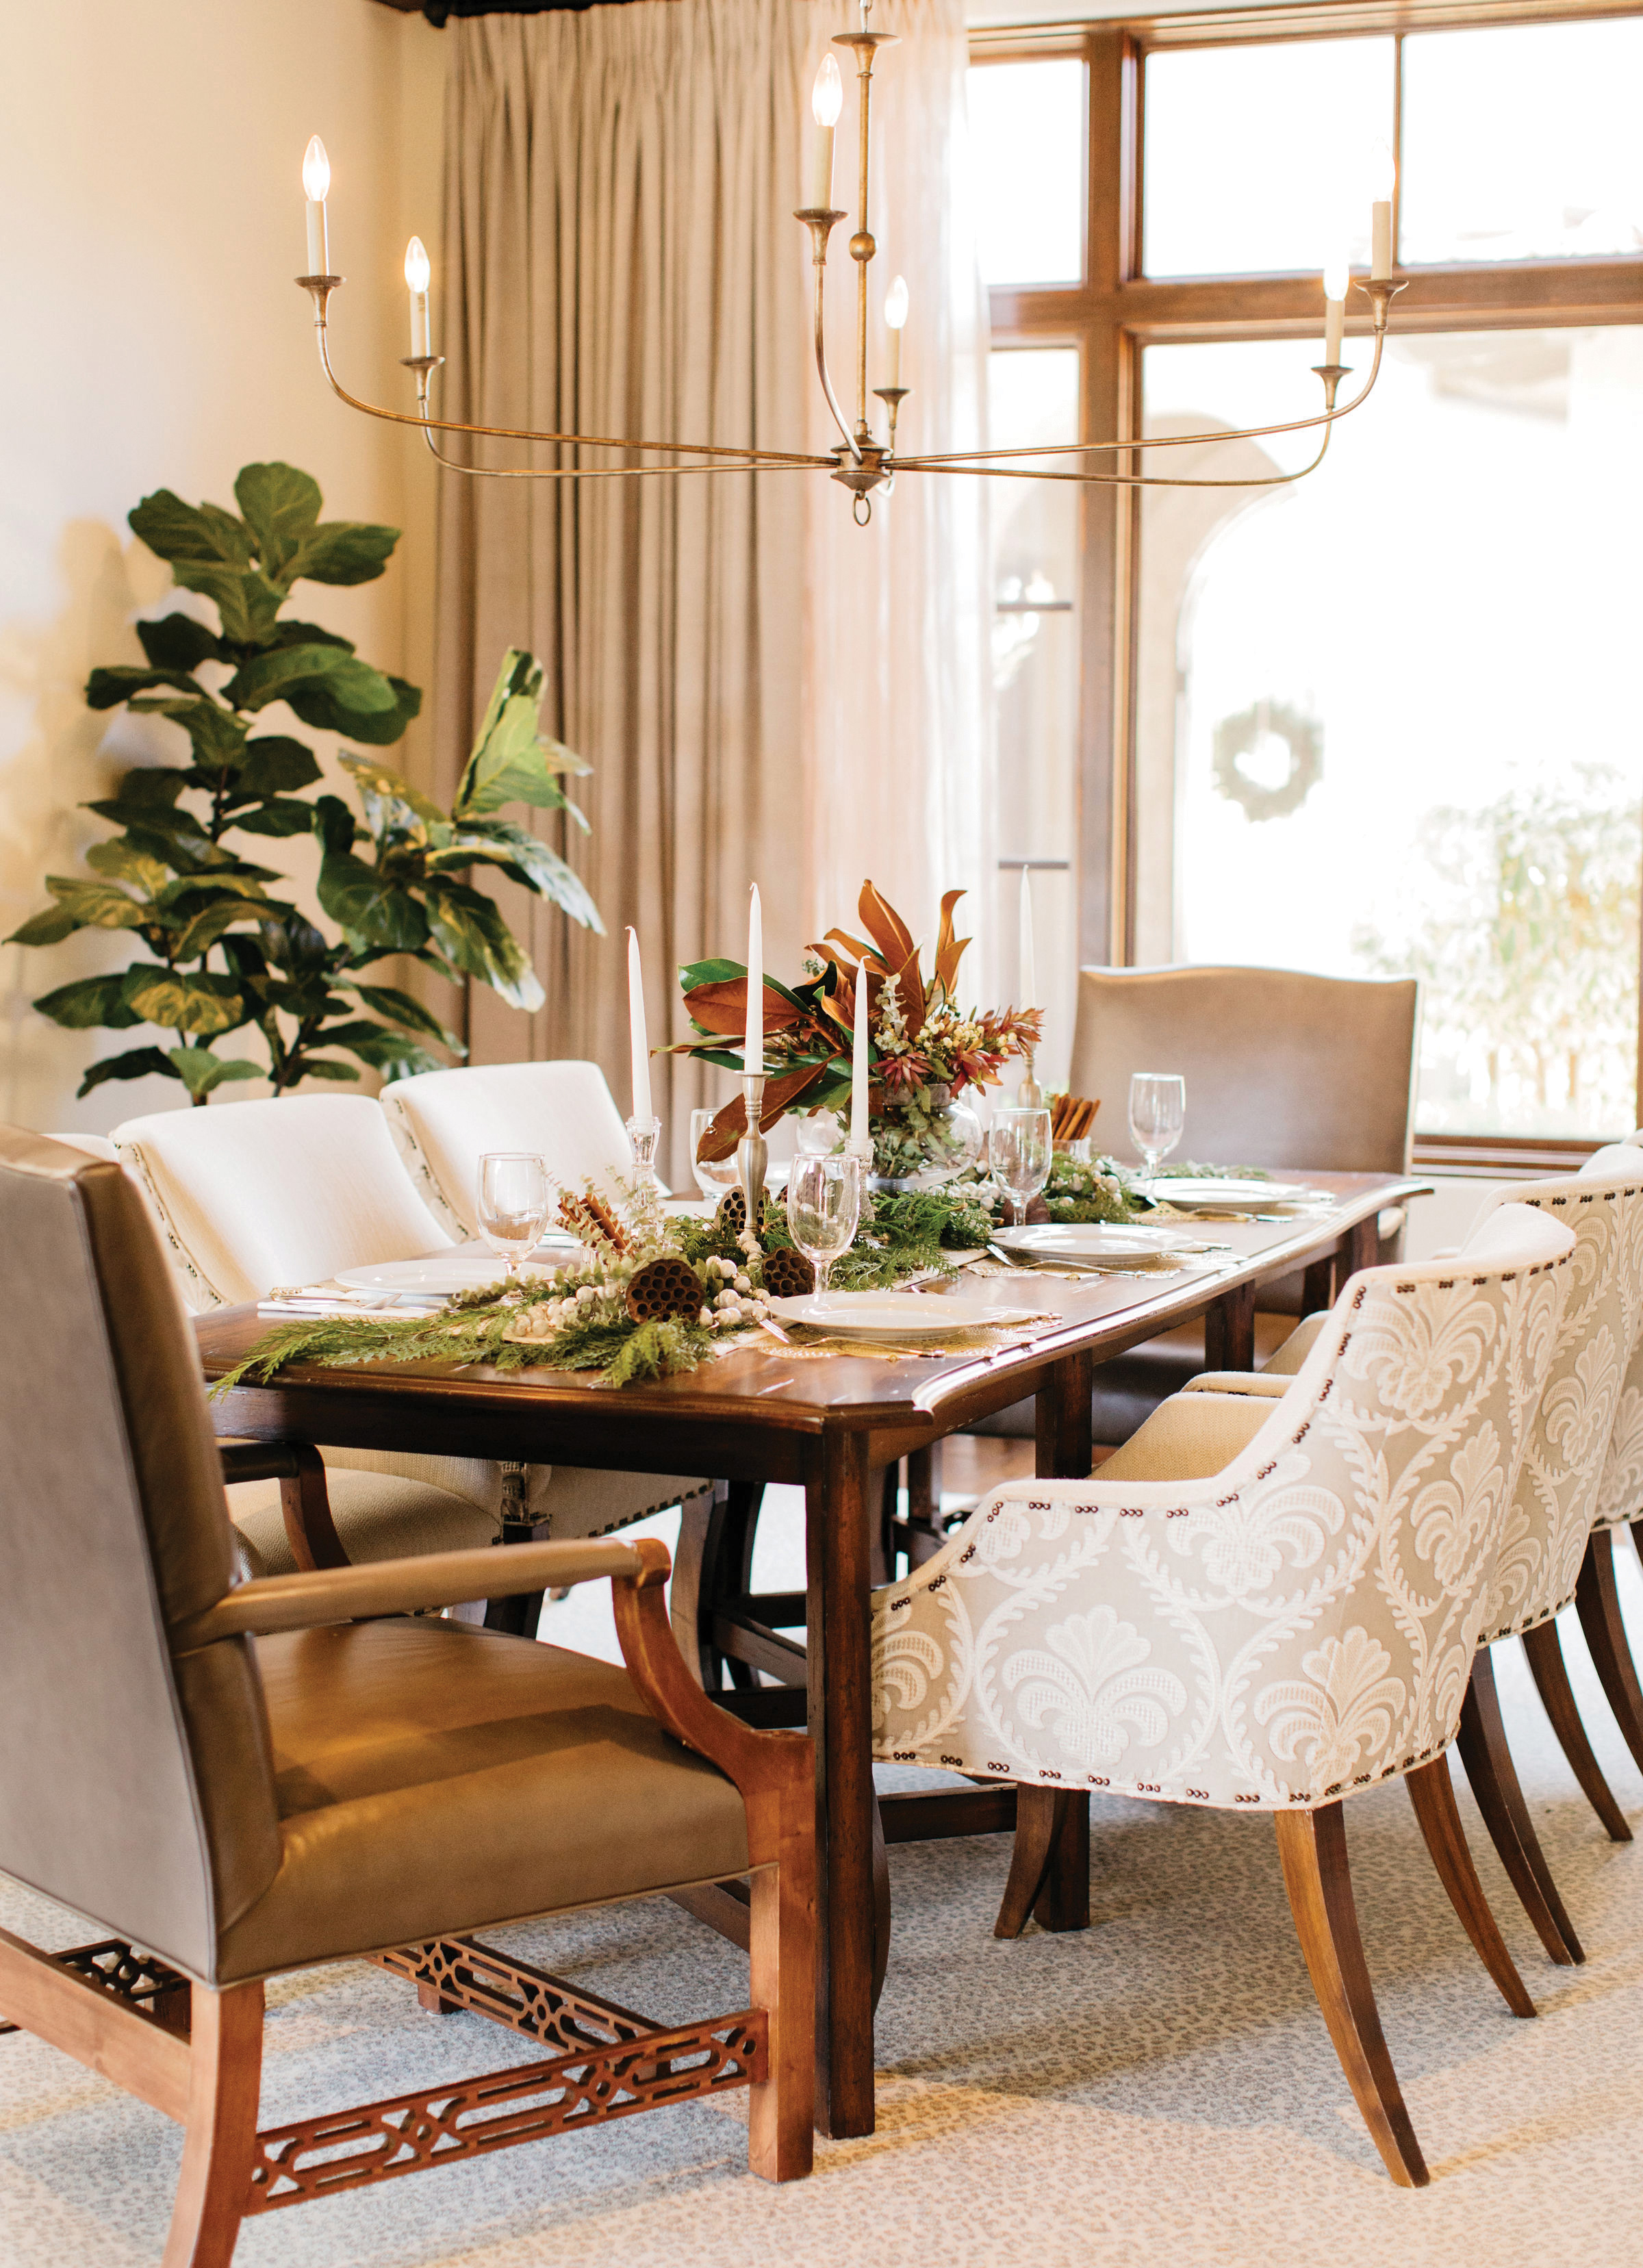 professional holiday decorating dining room holiday decor festive christmas tabletop centerpiece